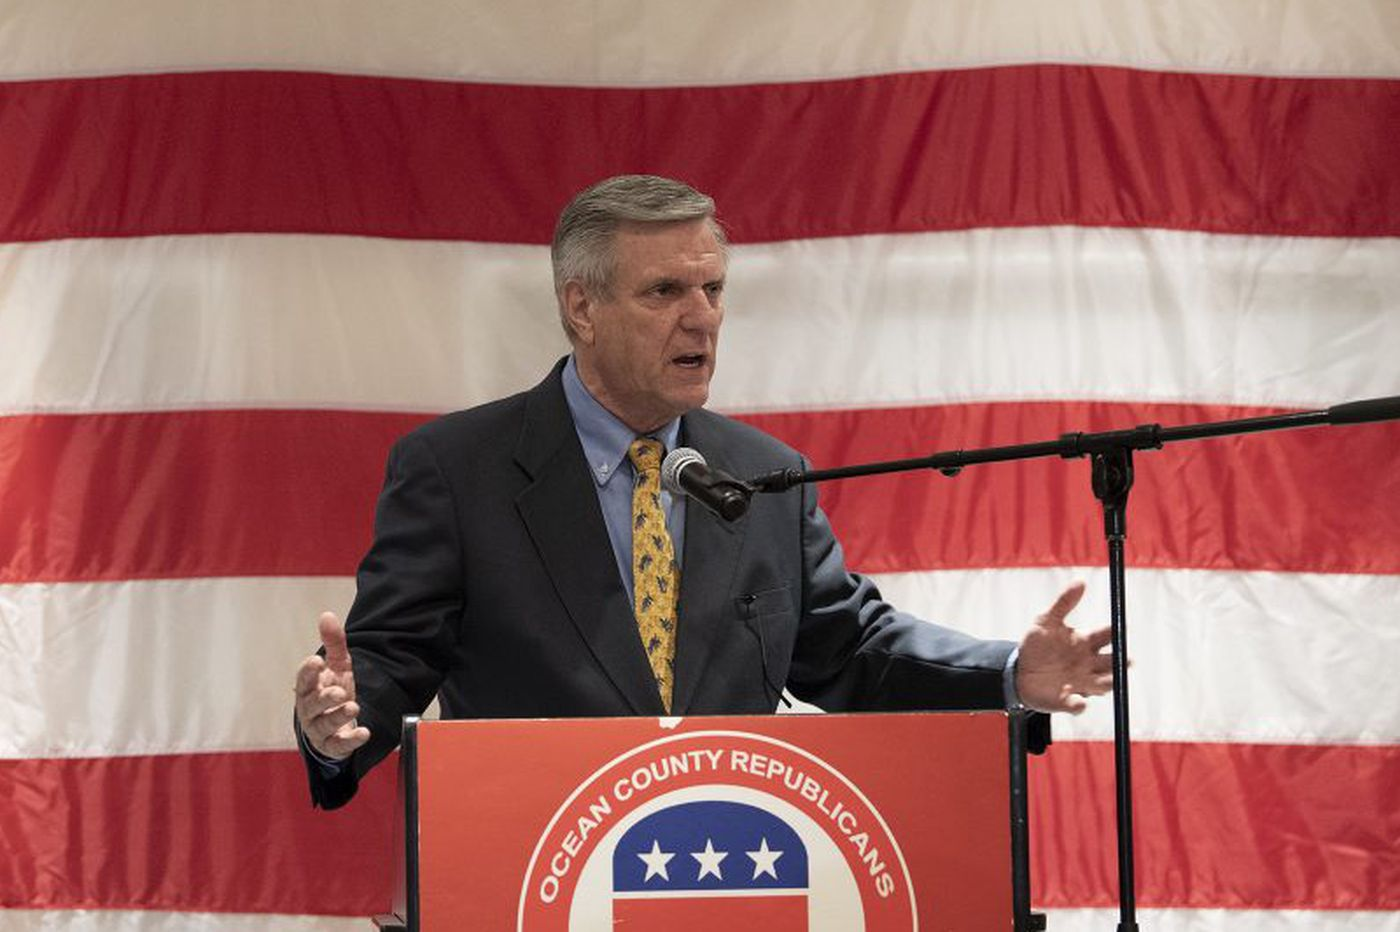 New Jersey GOP powerbroker George Gilmore steps down after conviction on tax charges